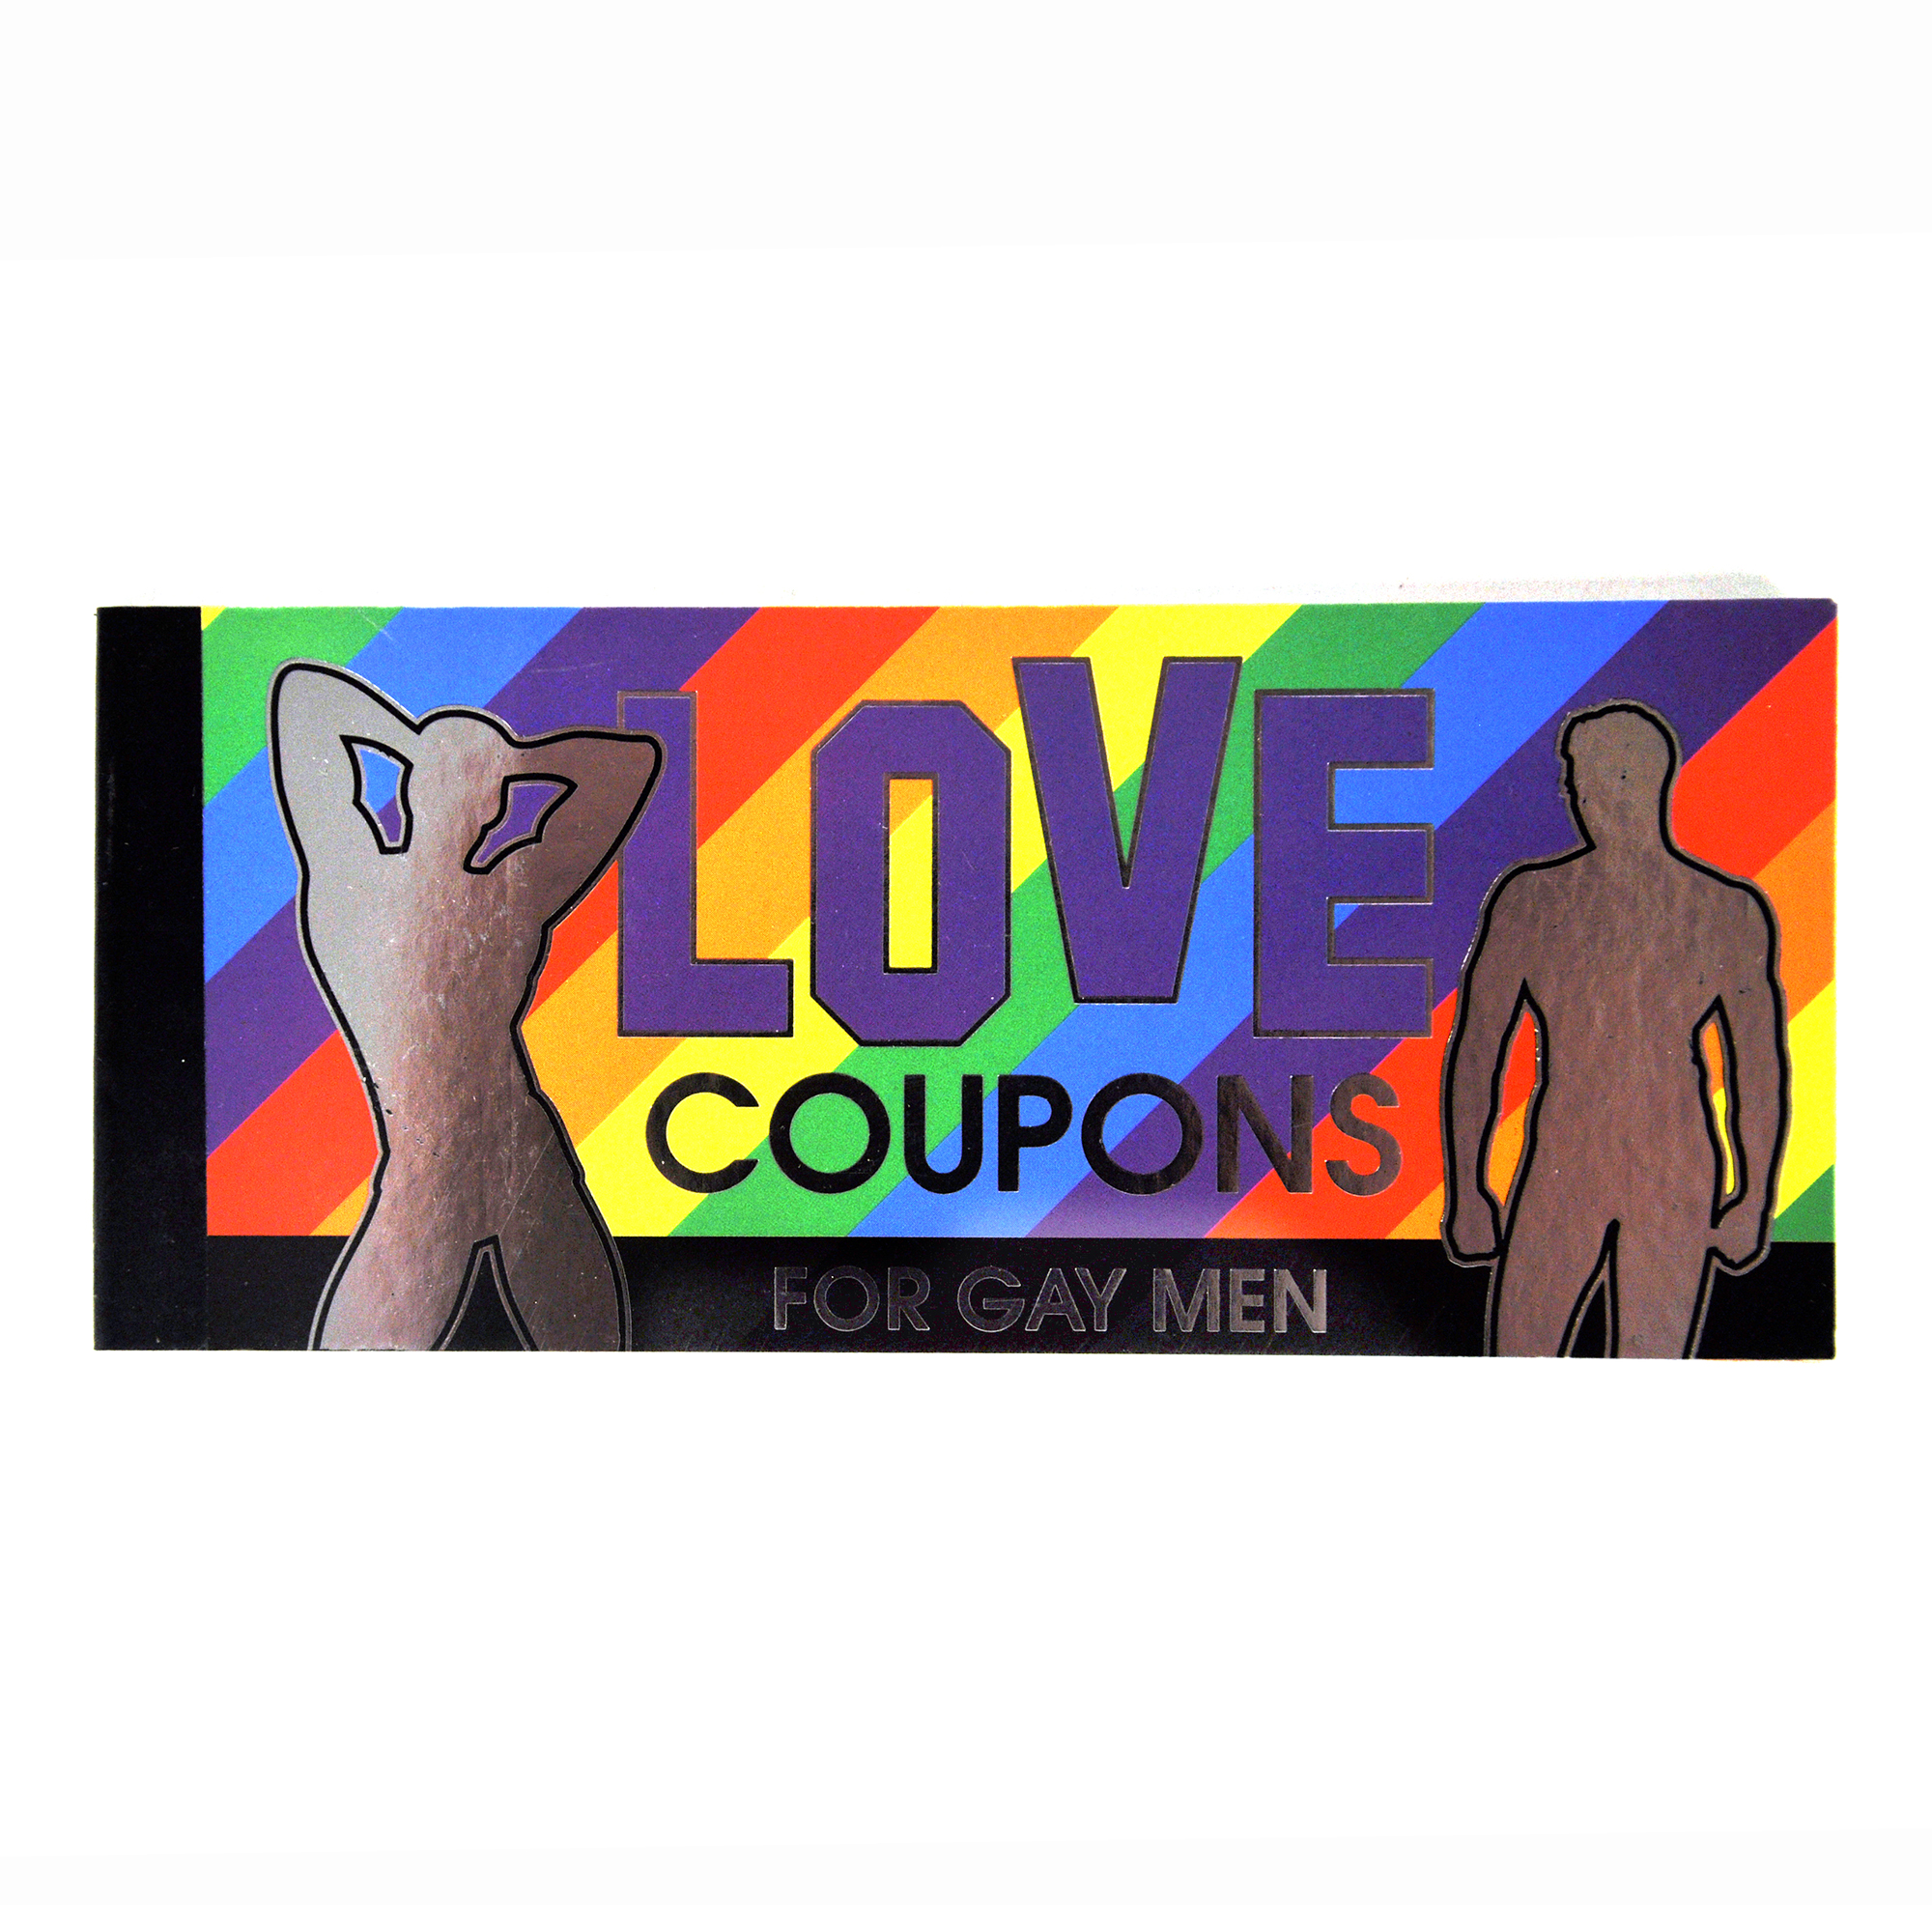 Gay love coupons